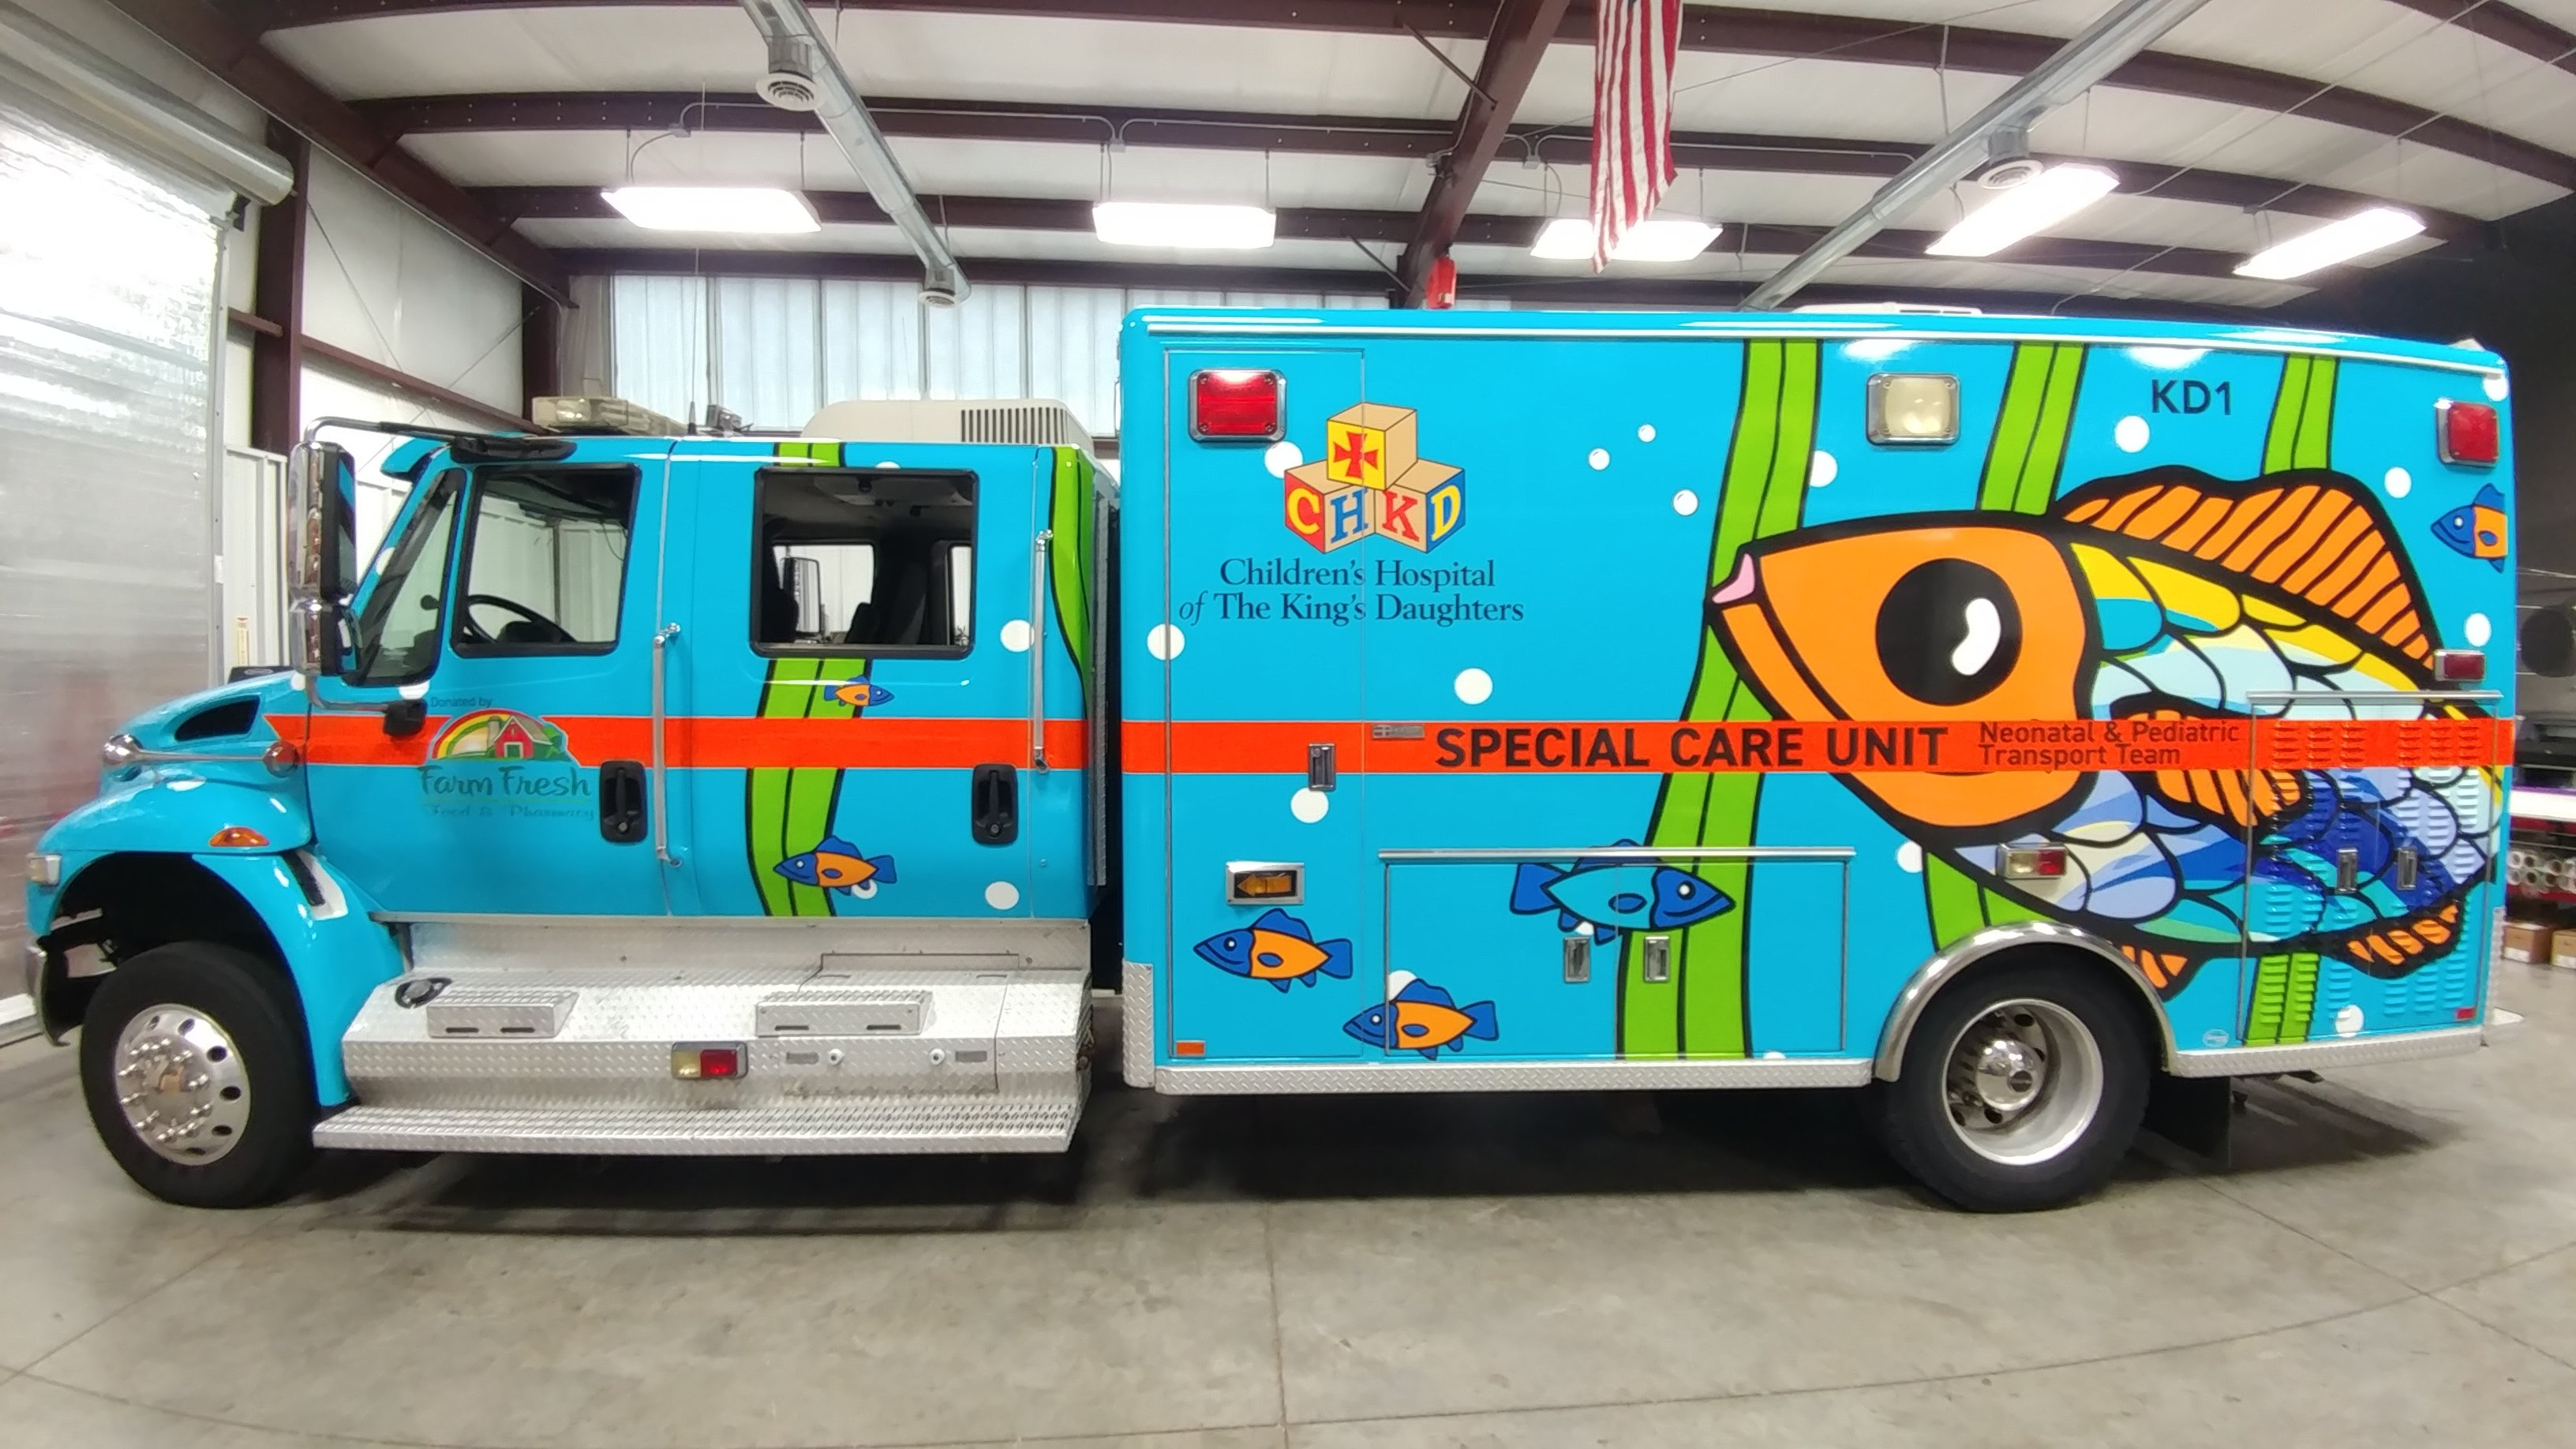 CHKD ambulance wrap - OnieTonie™ design